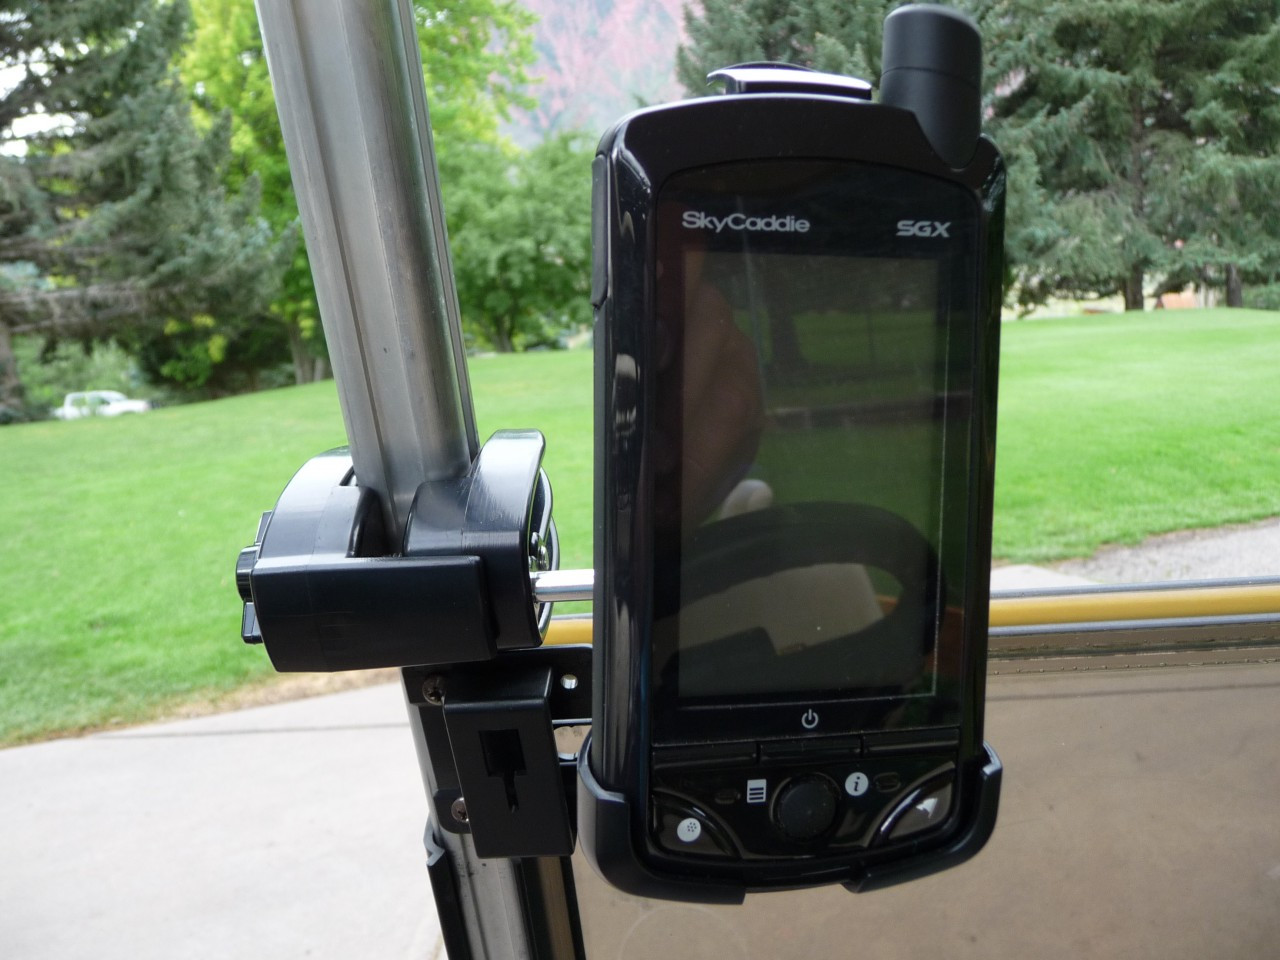 Golf Cart GPS Mount / Holder For SkyCad SGX and SGXw - Cad Buddy Golf Cart Holders on tank holder, dryer holder, golf card holder, car holder, golf camera holder, wheel holder, computer holder, golf sign holder, fan holder, tv holder, golf bag holder, chain saw holder,